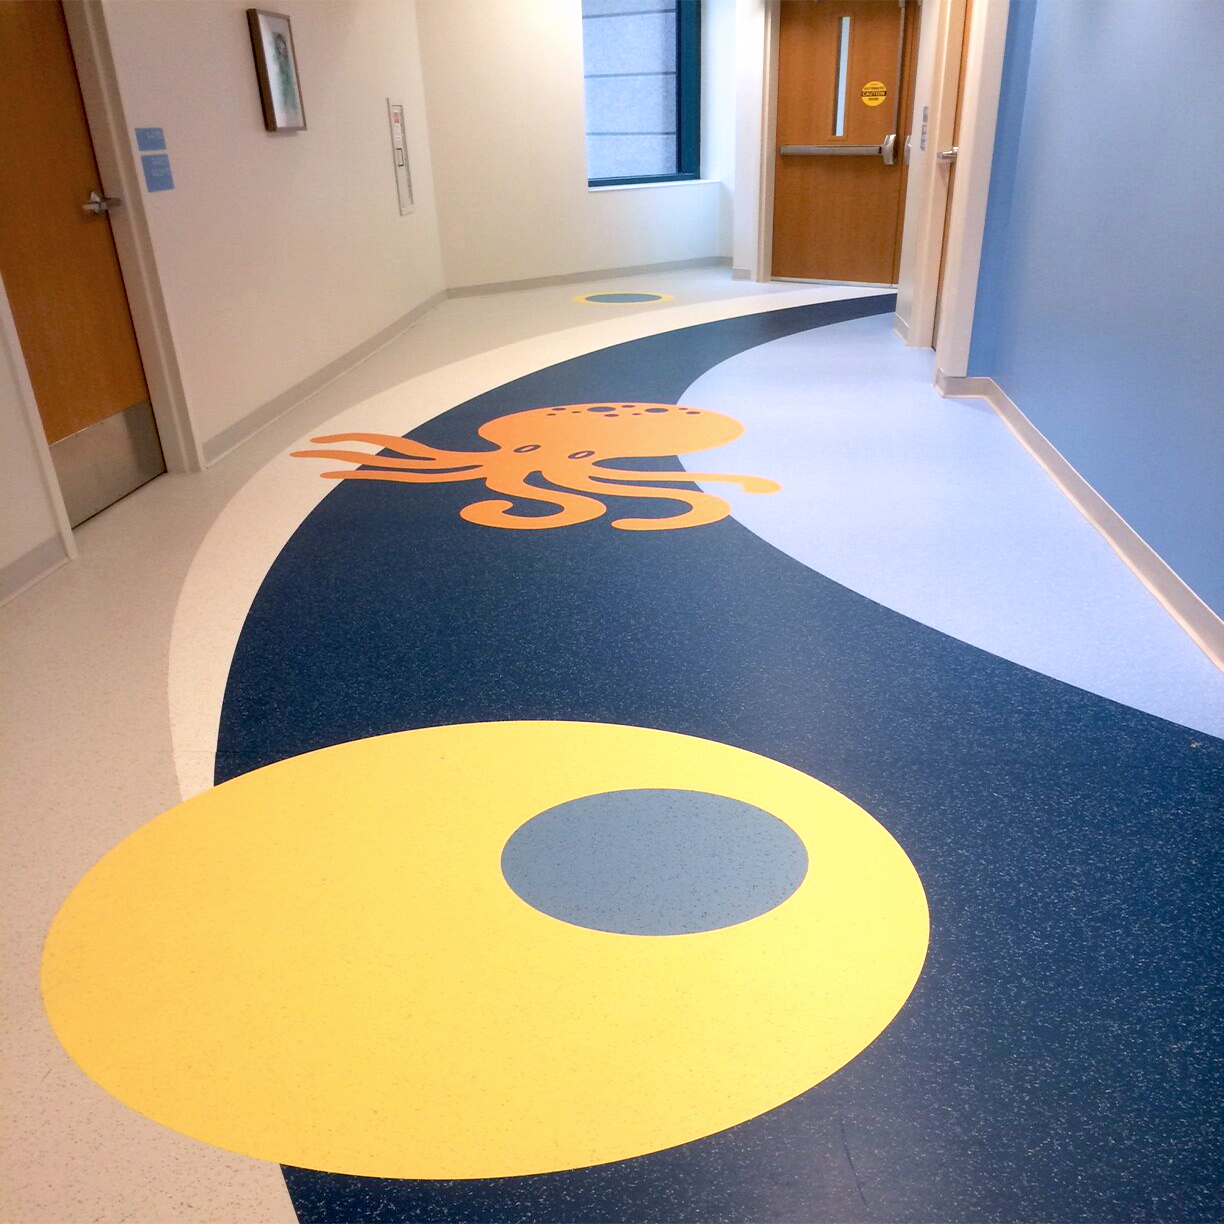 Commercial Healthcare Flooring - Hospital Hallway and Corridors